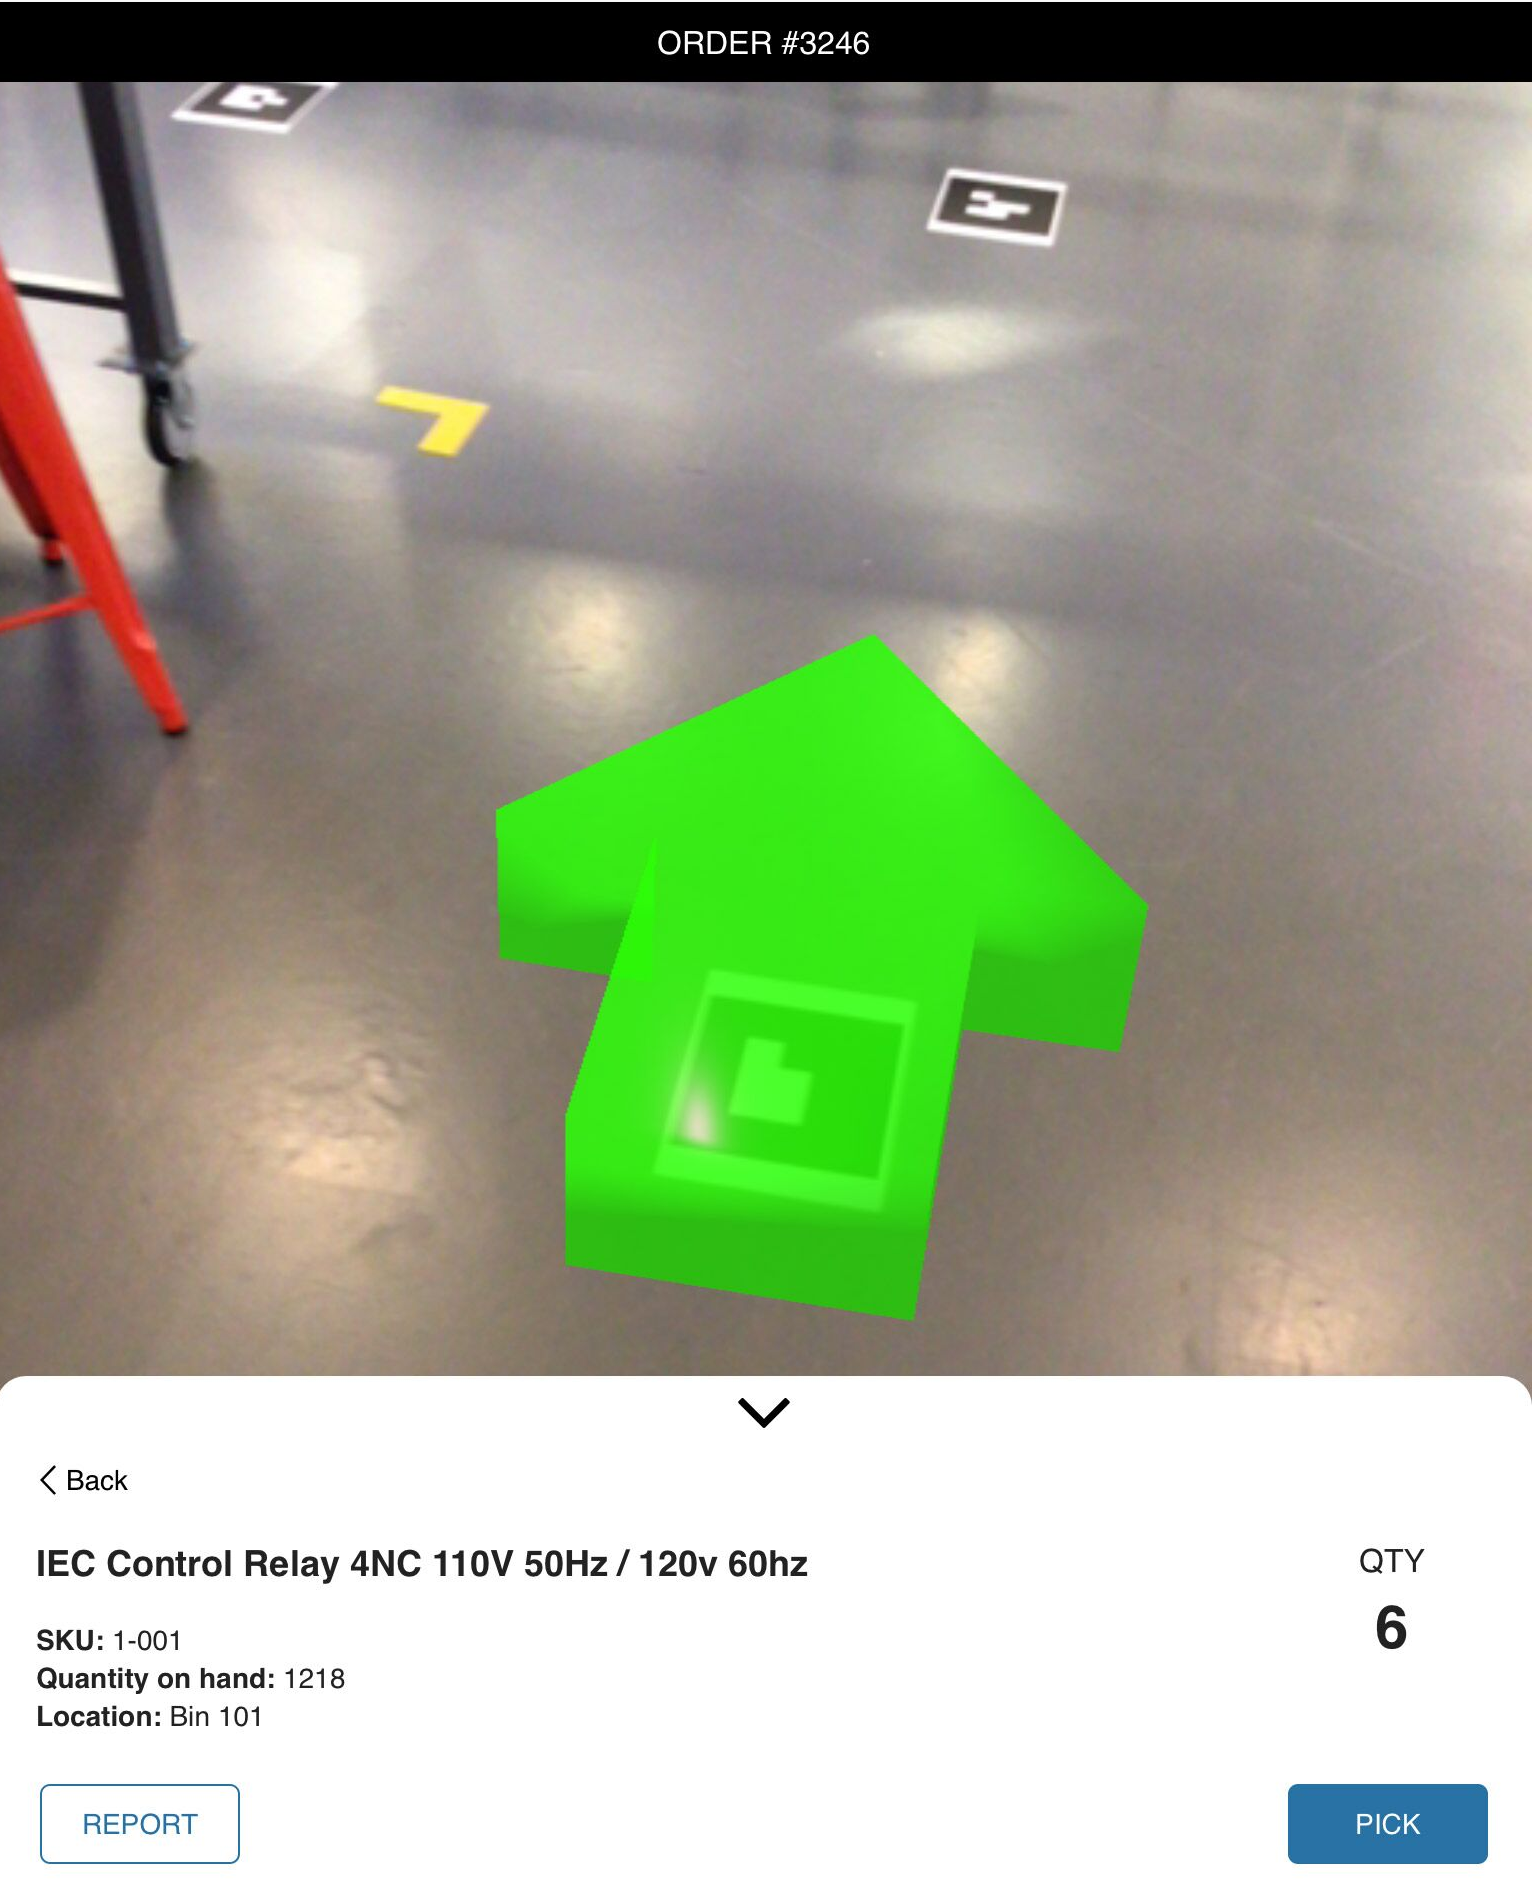 AR-generated arrows guide warehouse employees to an item's location.